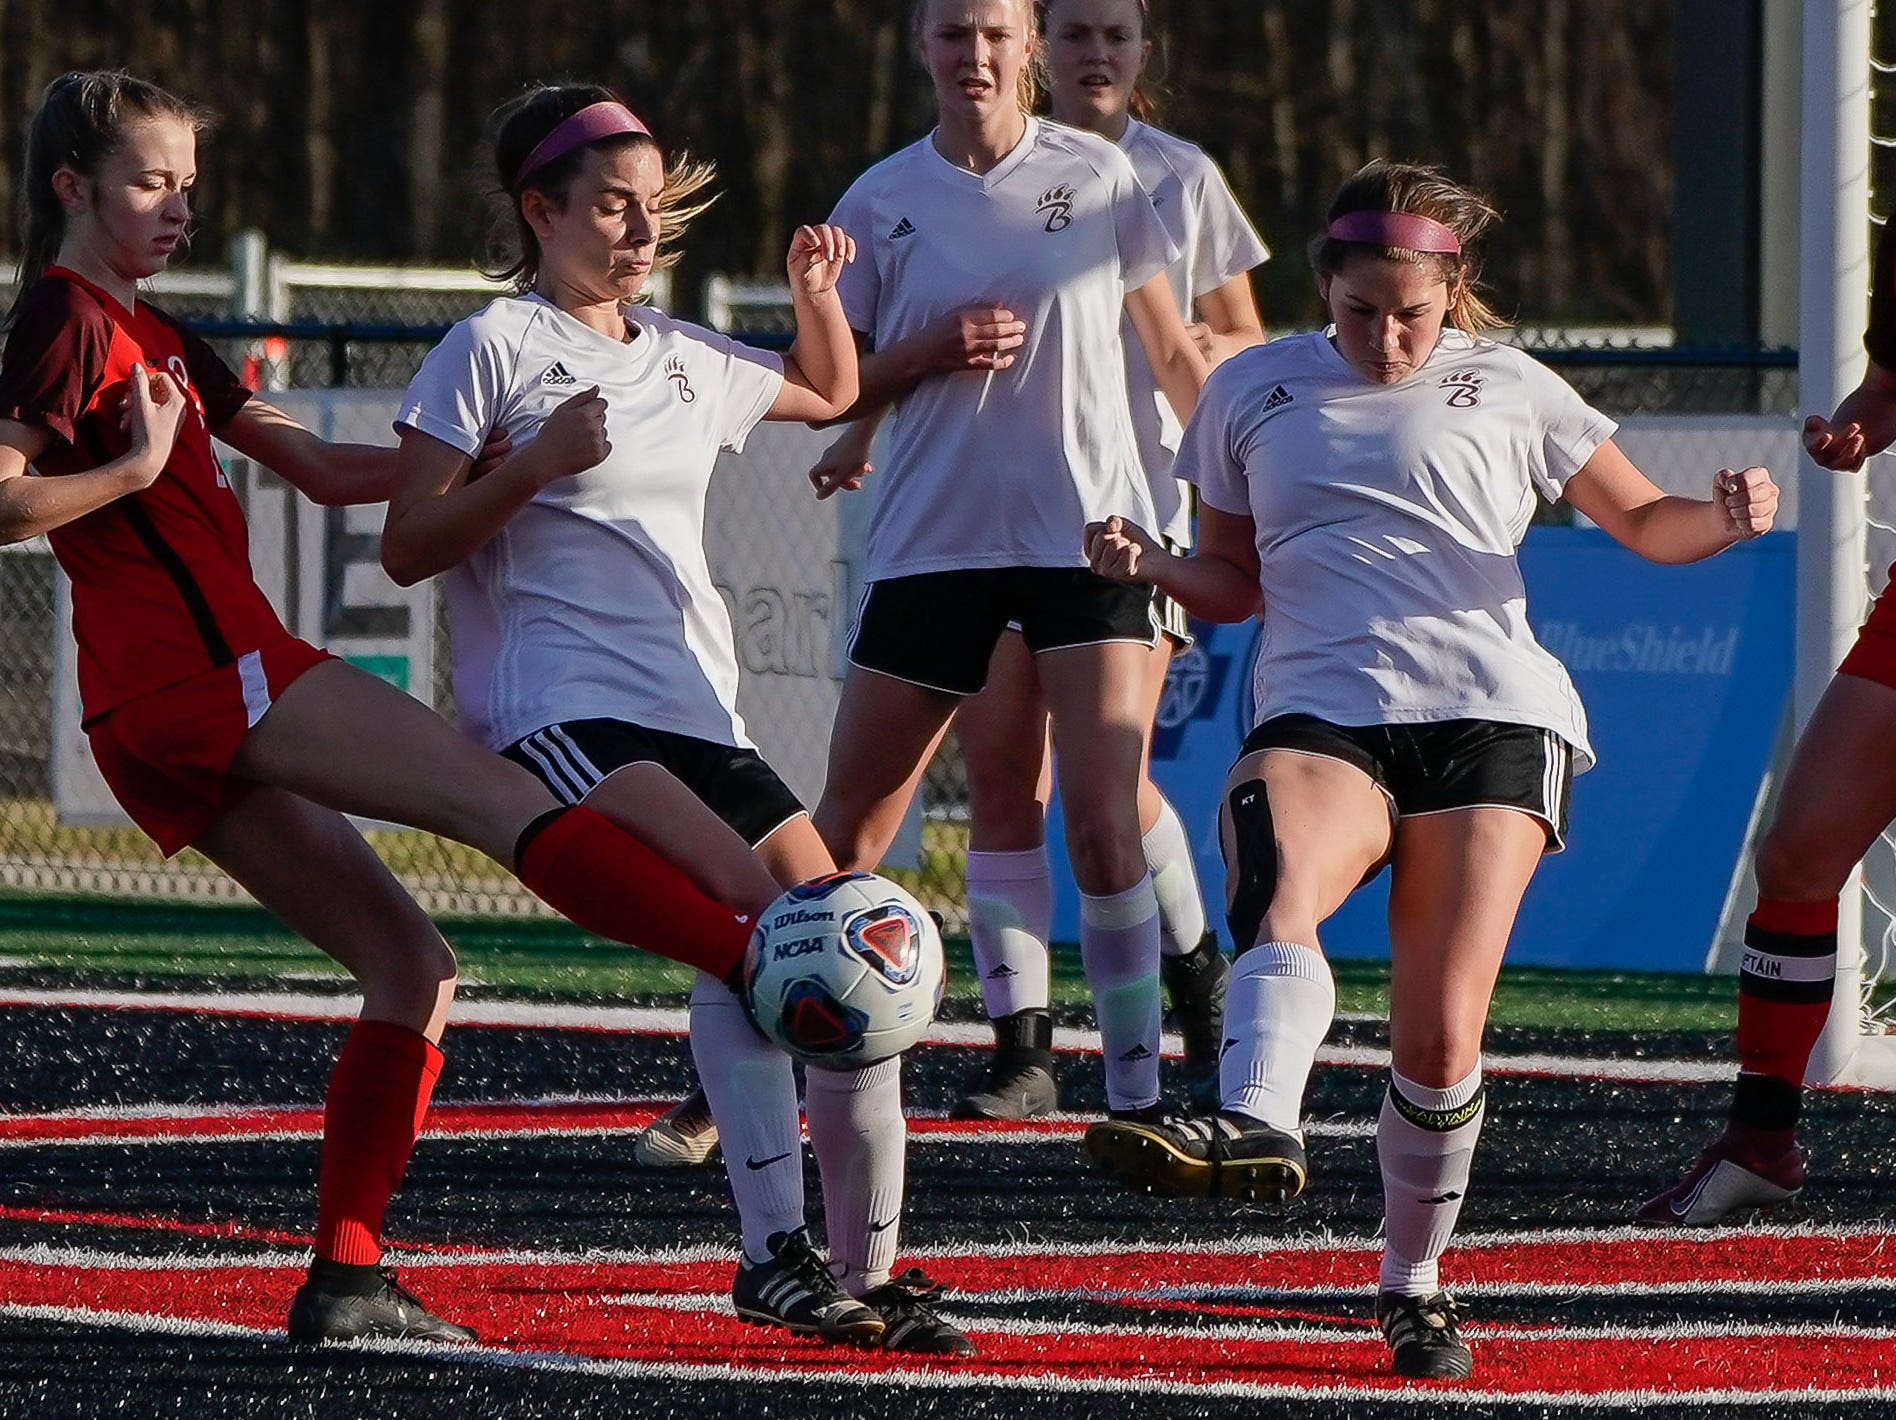 Lafayette against Long Beach during the MHSAA 5A Girls Soccer Championships held at Brandon High School in Brandon, MS, Saturday February 9, 2019.(Bob Smith-For The Clarion Ledger)